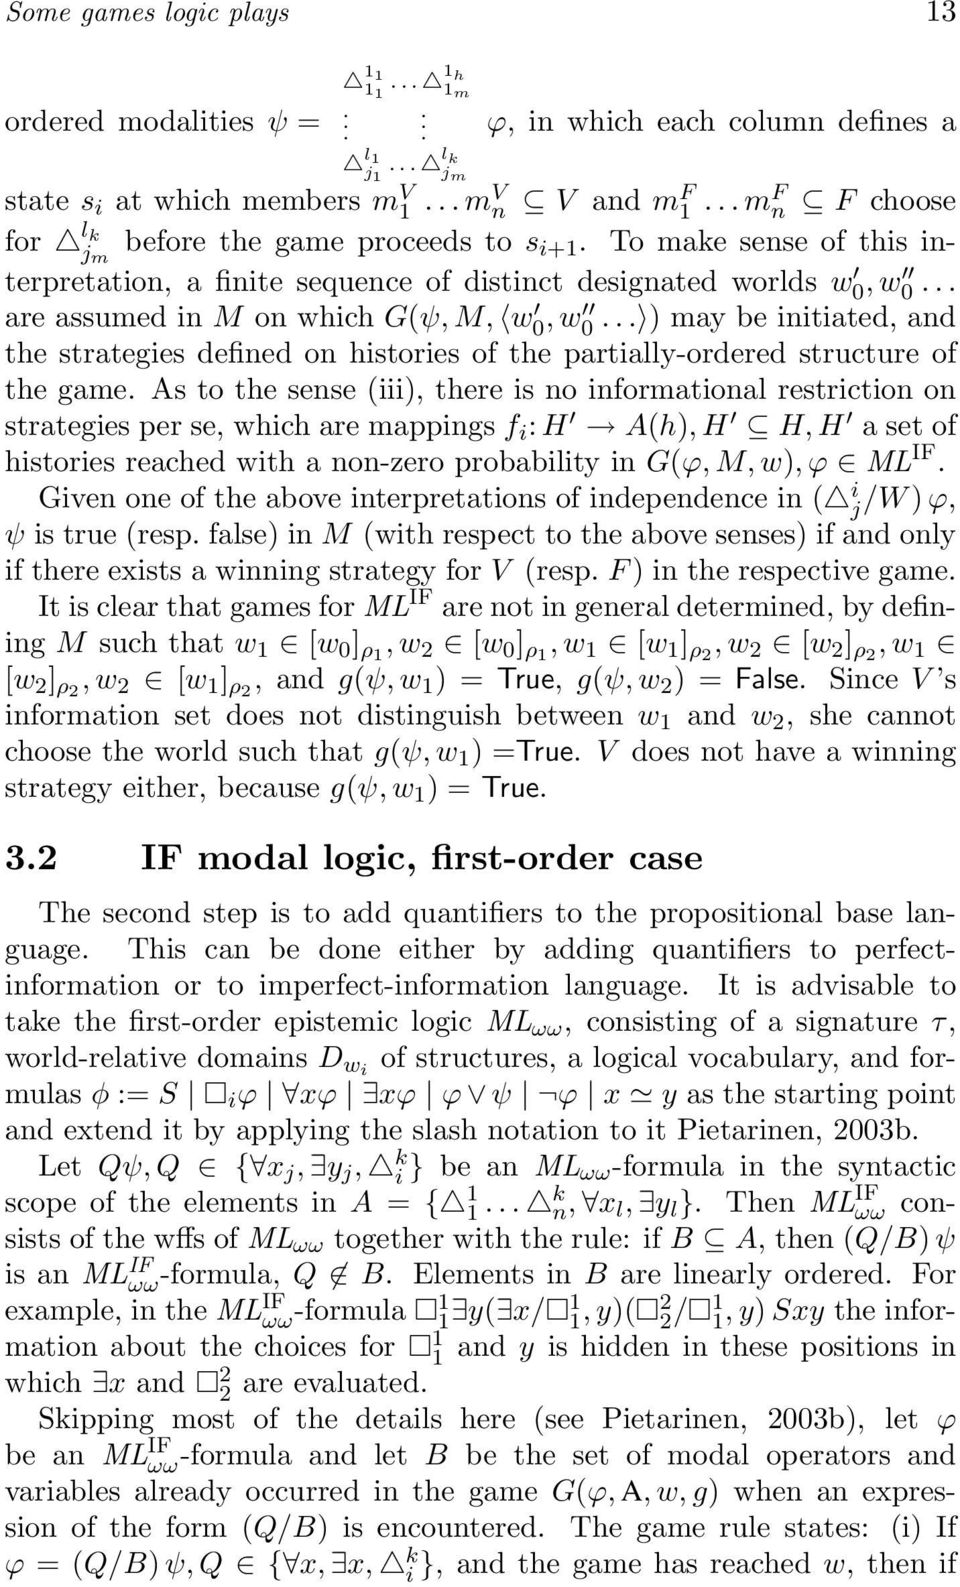 .. are assumed in M on which G(ψ, M, w 0, w 0... ) may be initiated, and the strategies defined on histories of the partially-ordered structure of the game.